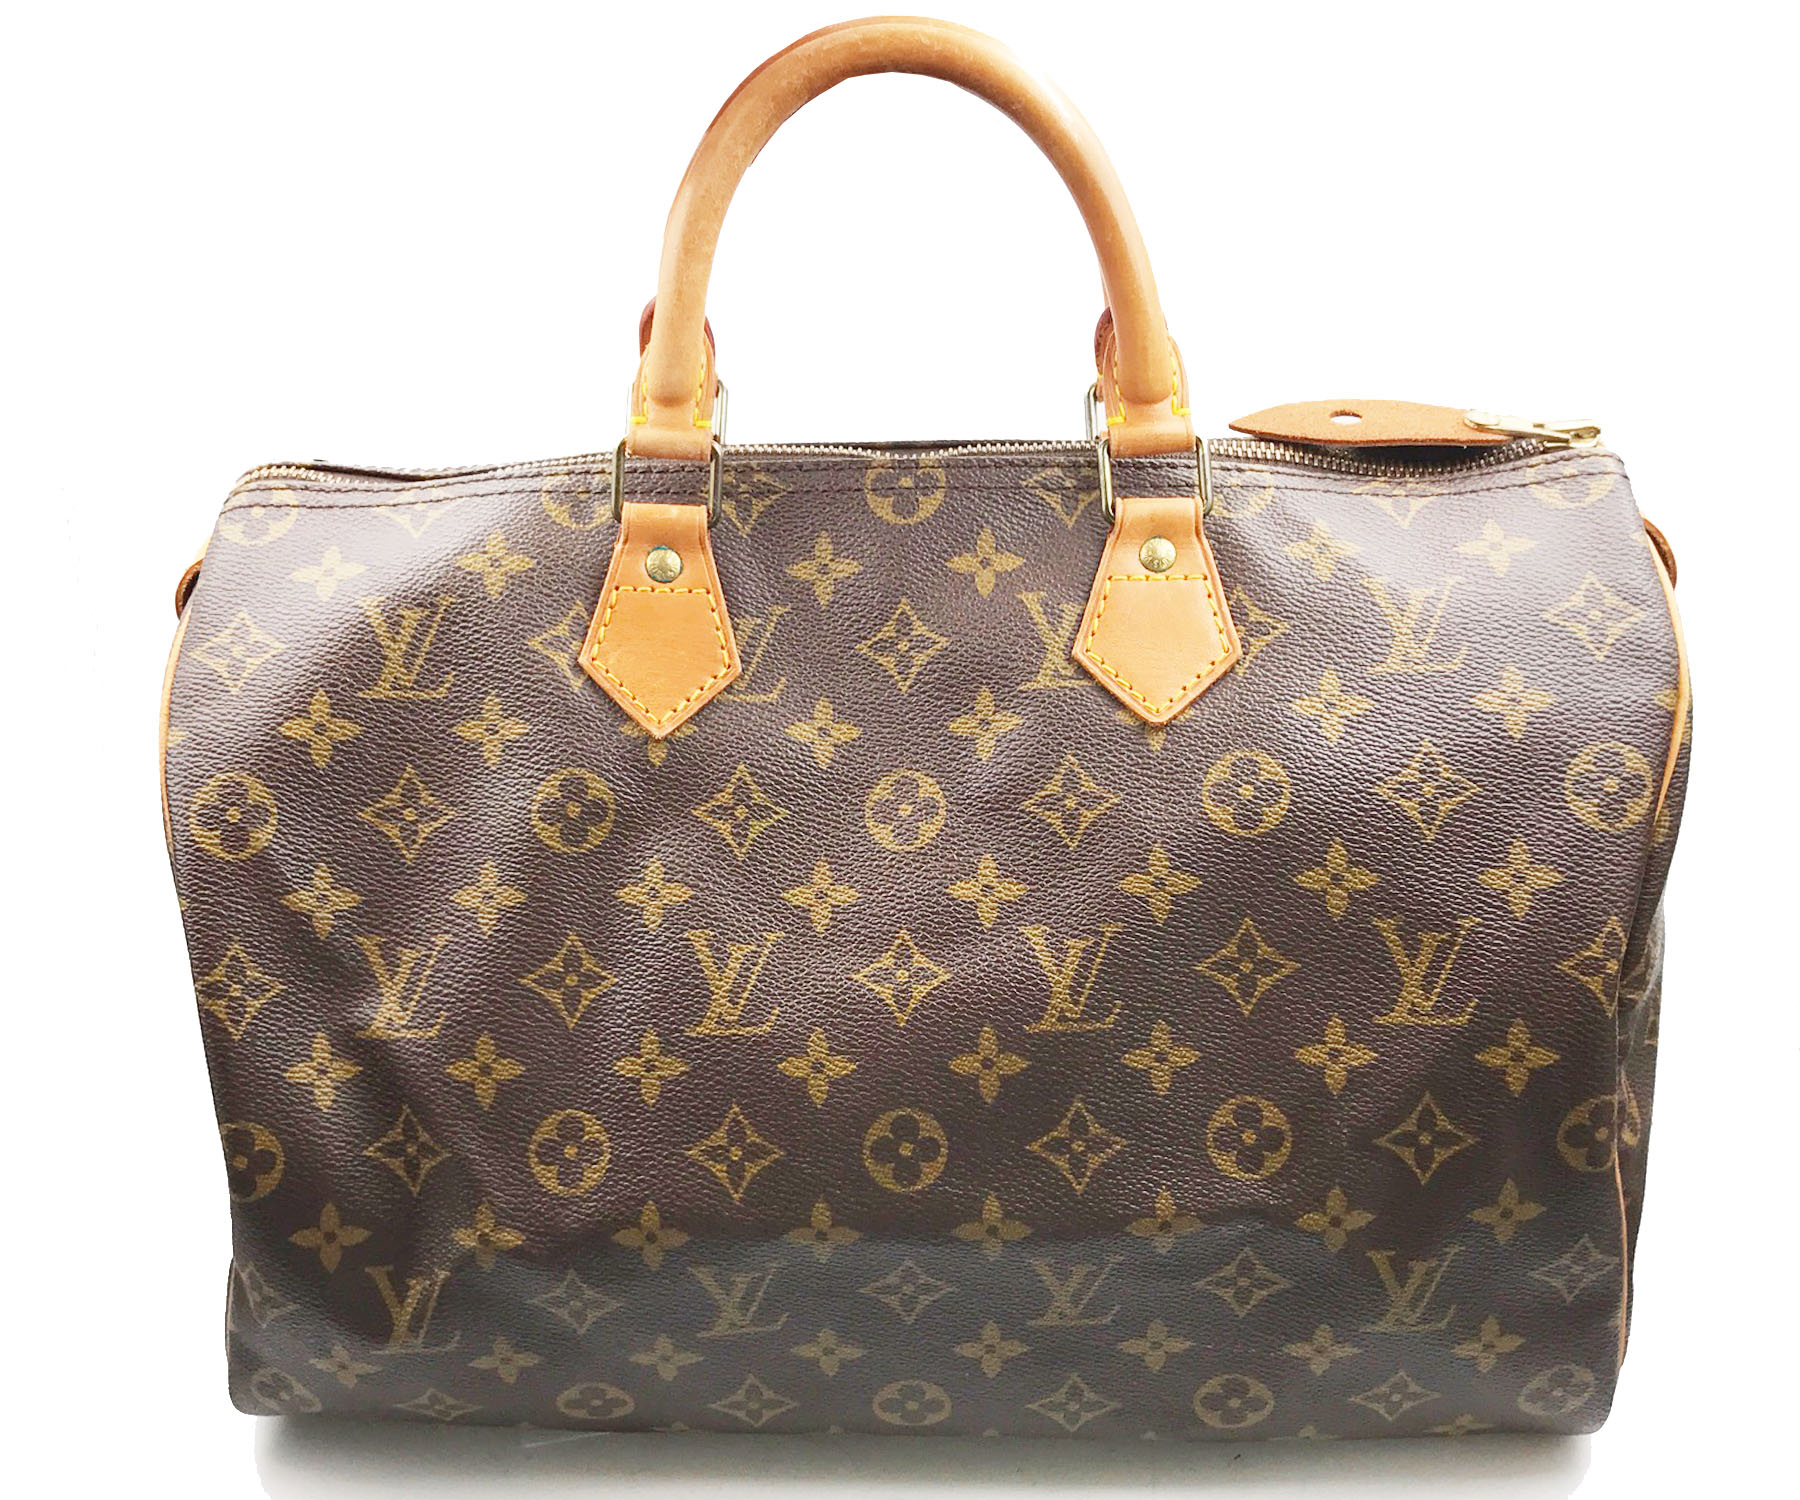 louis vuitton vintage monogram speedy 35 handbag lar vintage. Black Bedroom Furniture Sets. Home Design Ideas